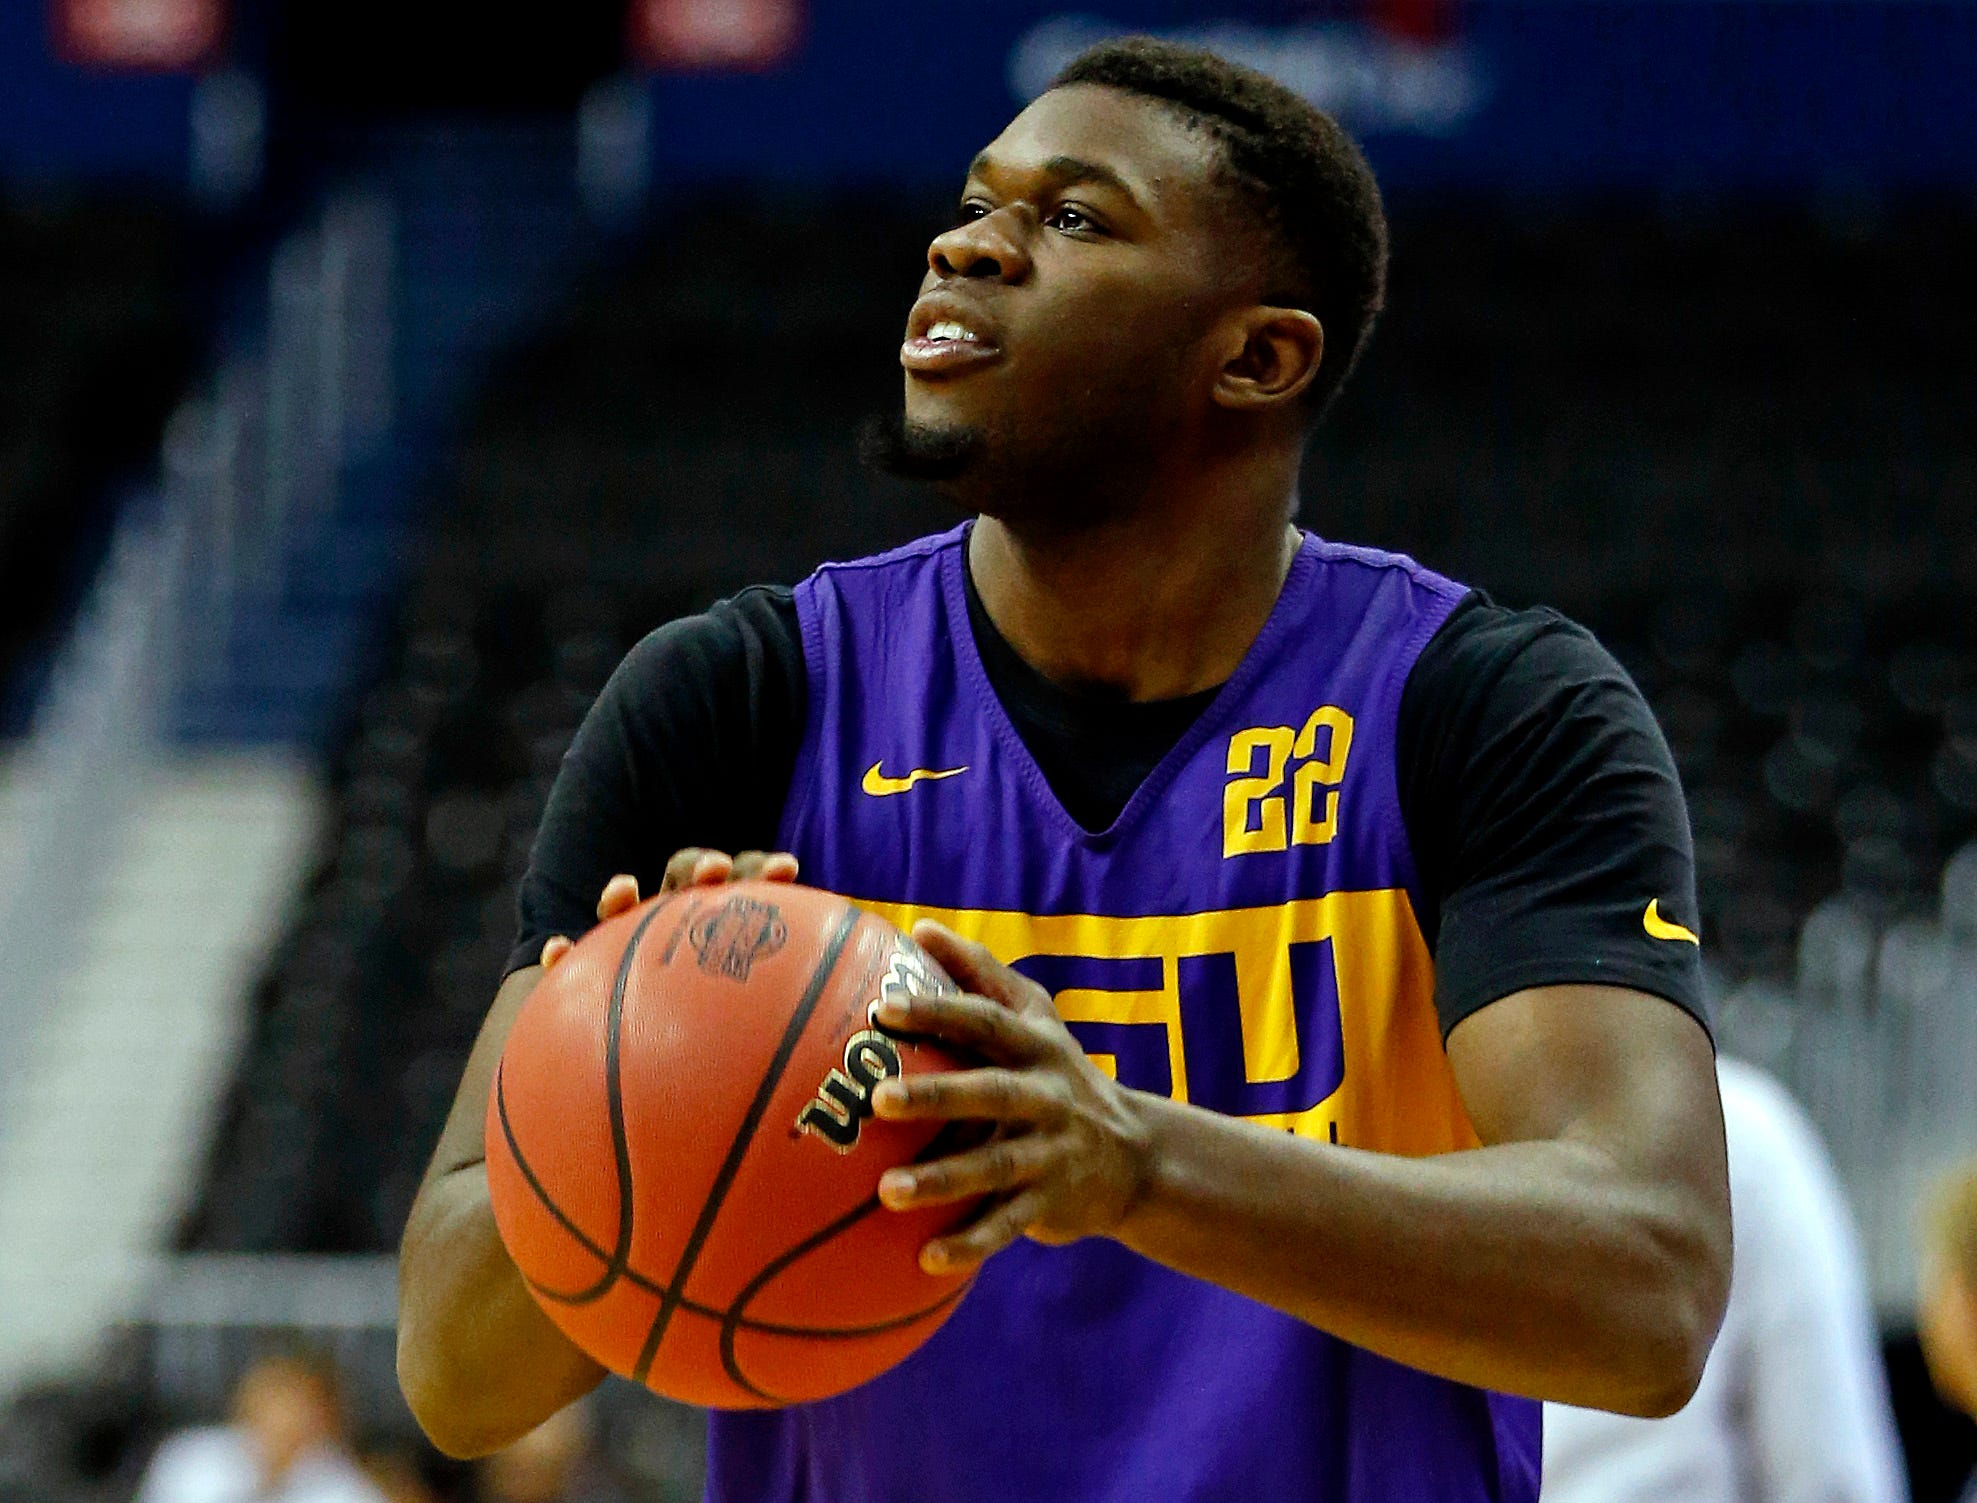 Mar 28, 2019; Washington, DC, USA; LSU Tigers forward Darius Days (22) shoots the ball during practice for the east regional of the 2019 NCAA Tournament at Capital One Arena. Mandatory Credit: Amber Searls-USA TODAY Sports